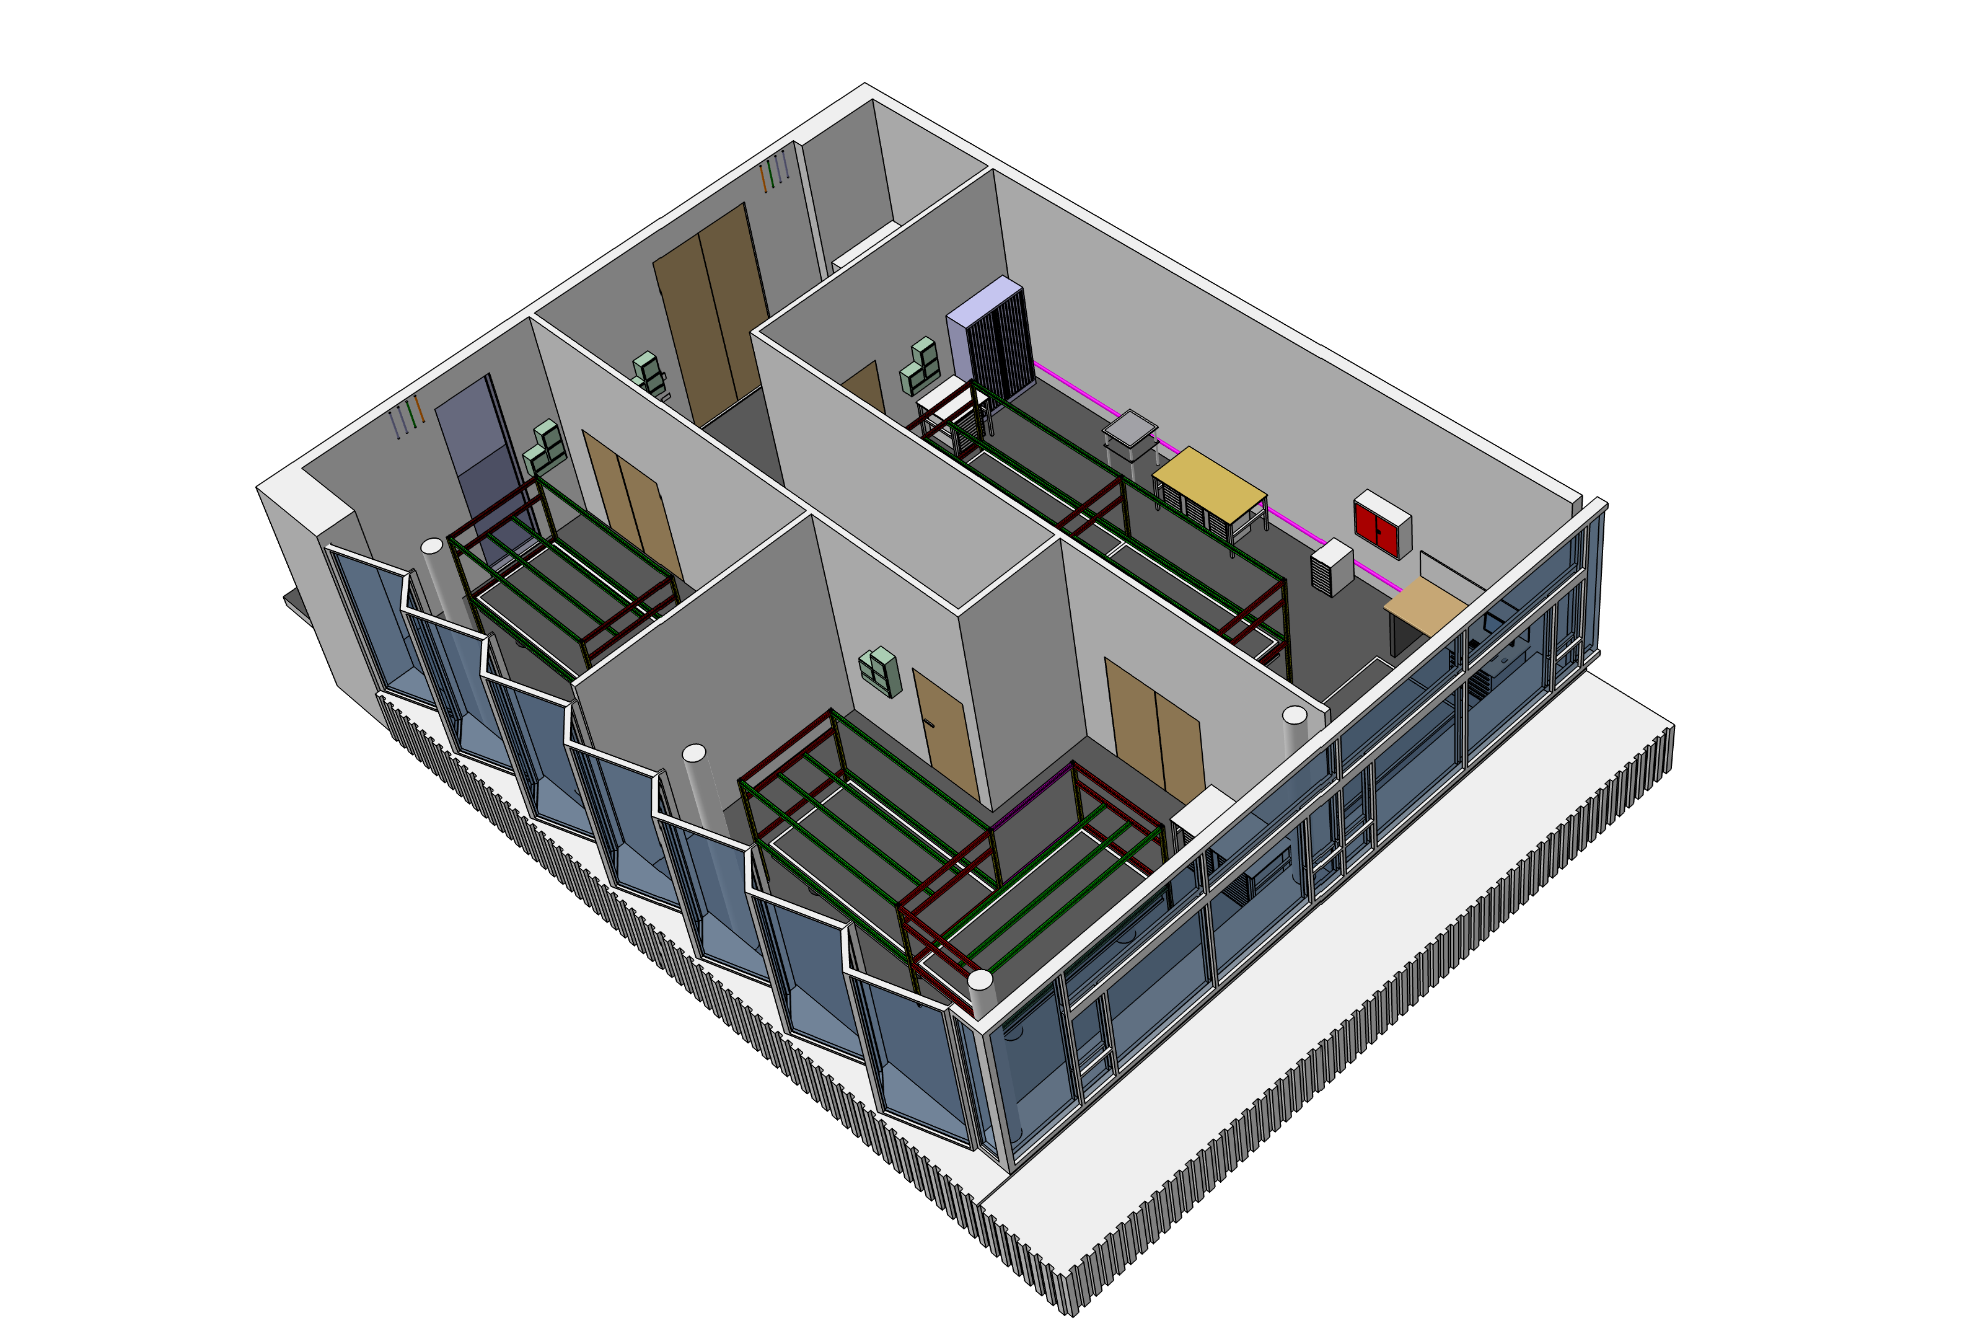 Model of lab space with high-tech infrastructure